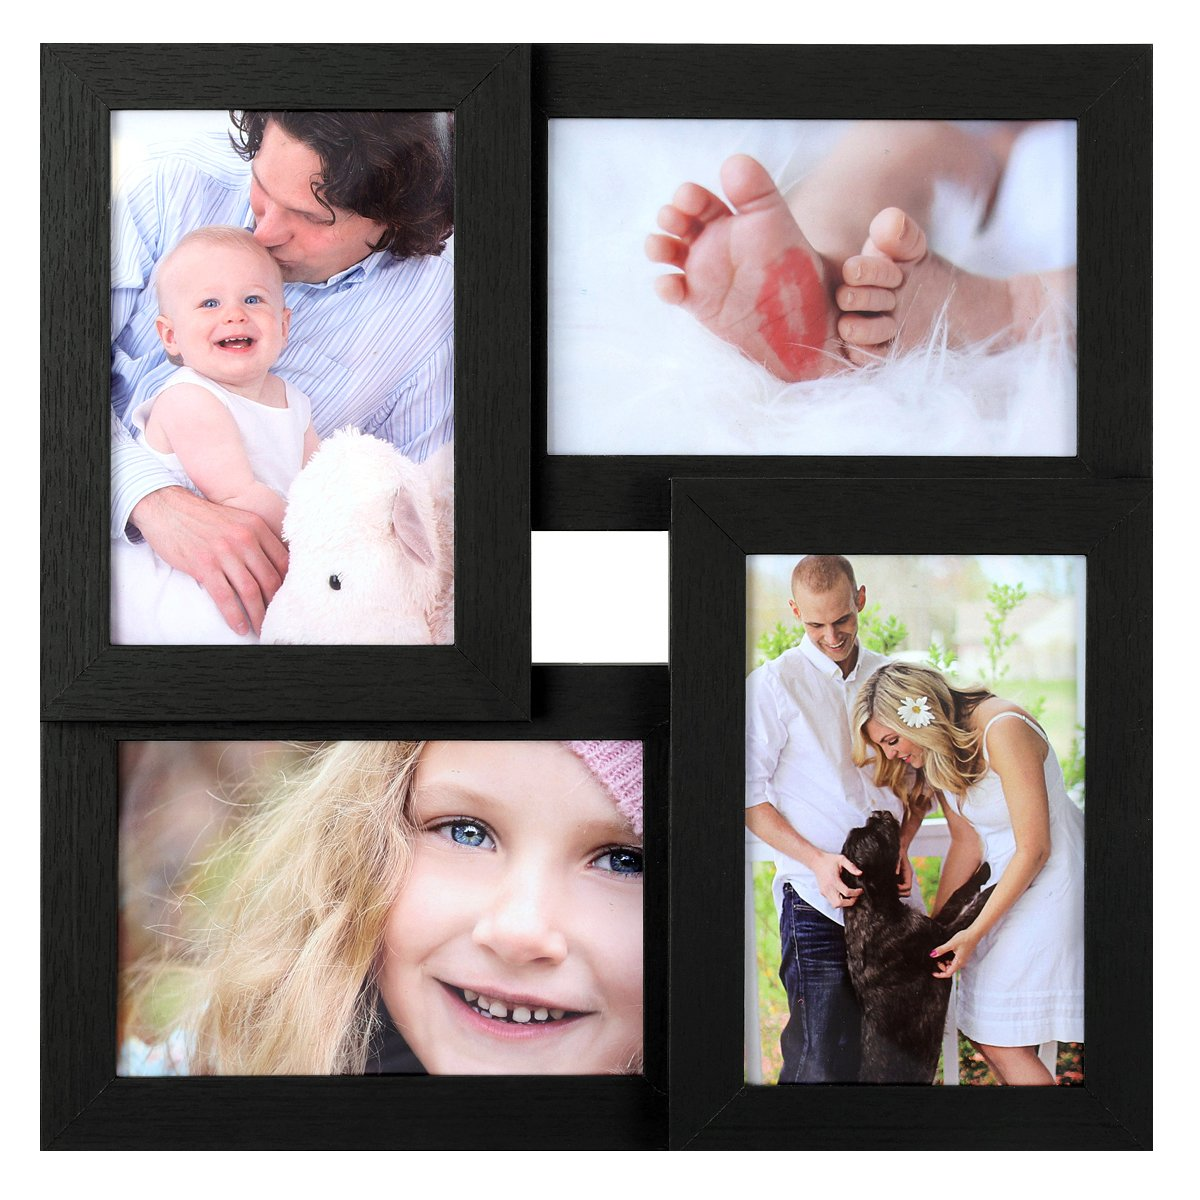 SONGMICS Collage Picture Frames, 4 x 6 Inches for 4 Photos, Picture Frames, Glass Front, Wood Grain Frame, Wall Hanging or Tabletop Stand, Black URPF25BK by SONGMICS